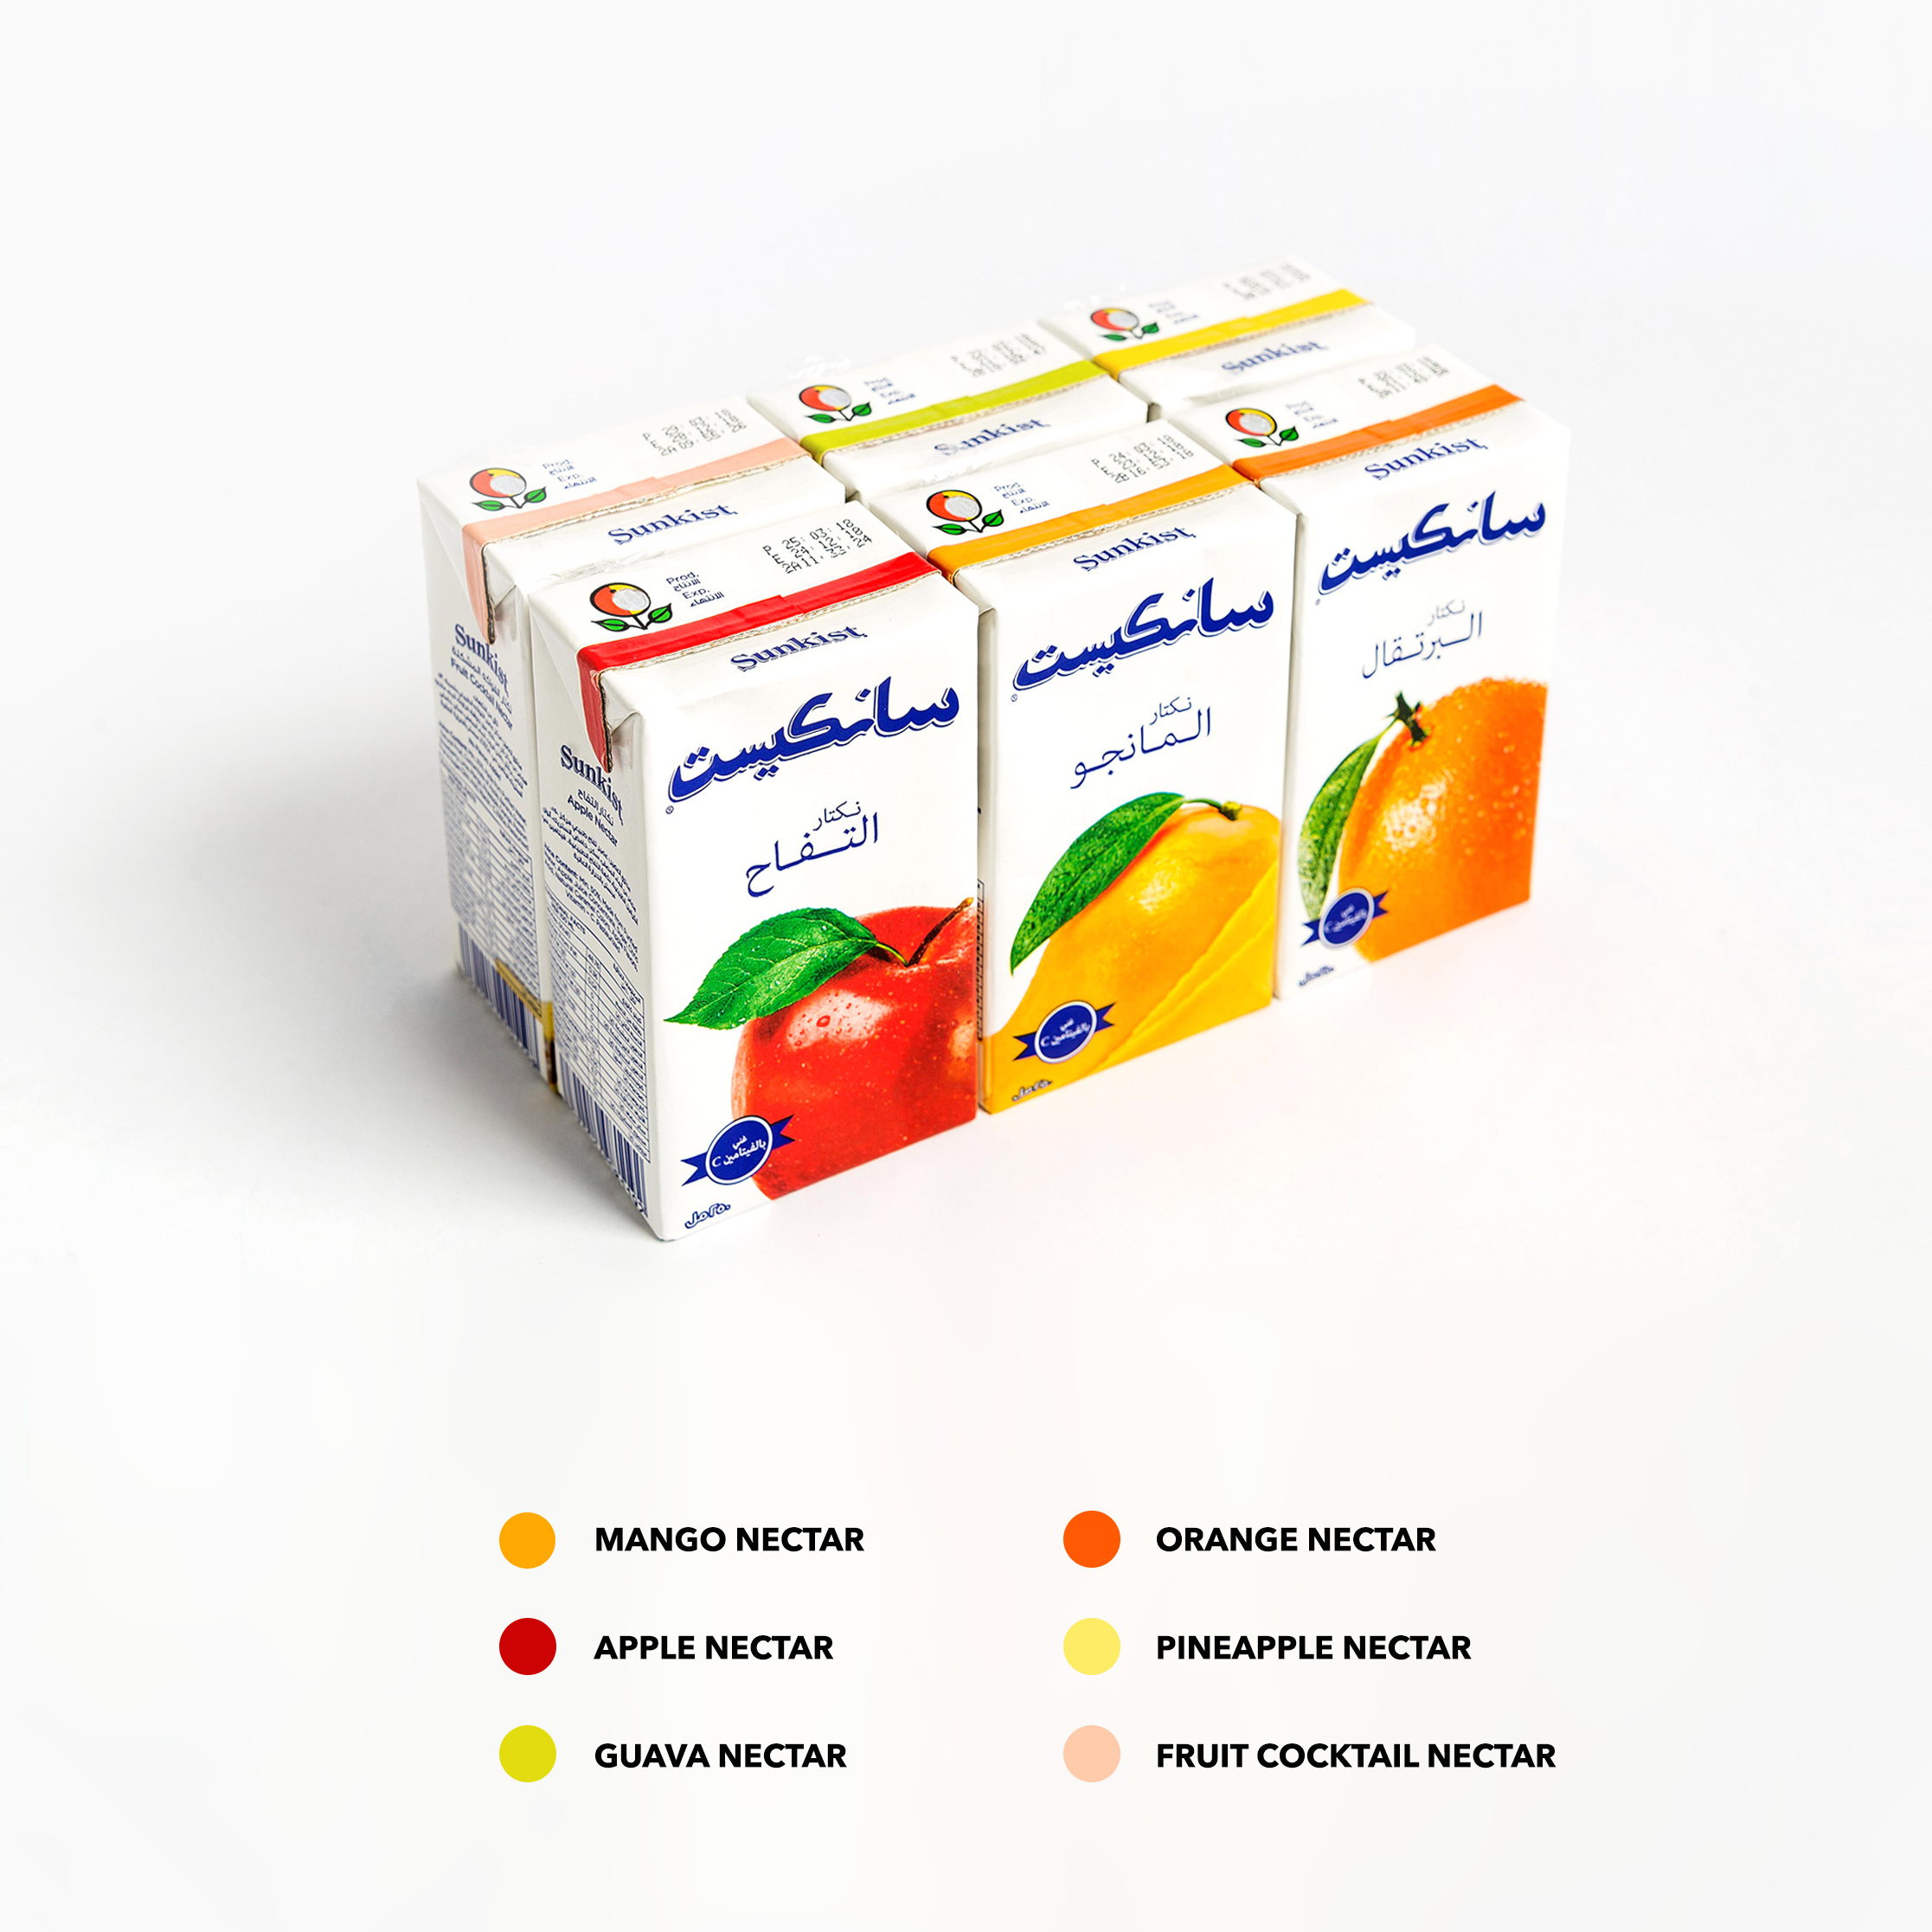 Sunkist Lineup colors.jpg